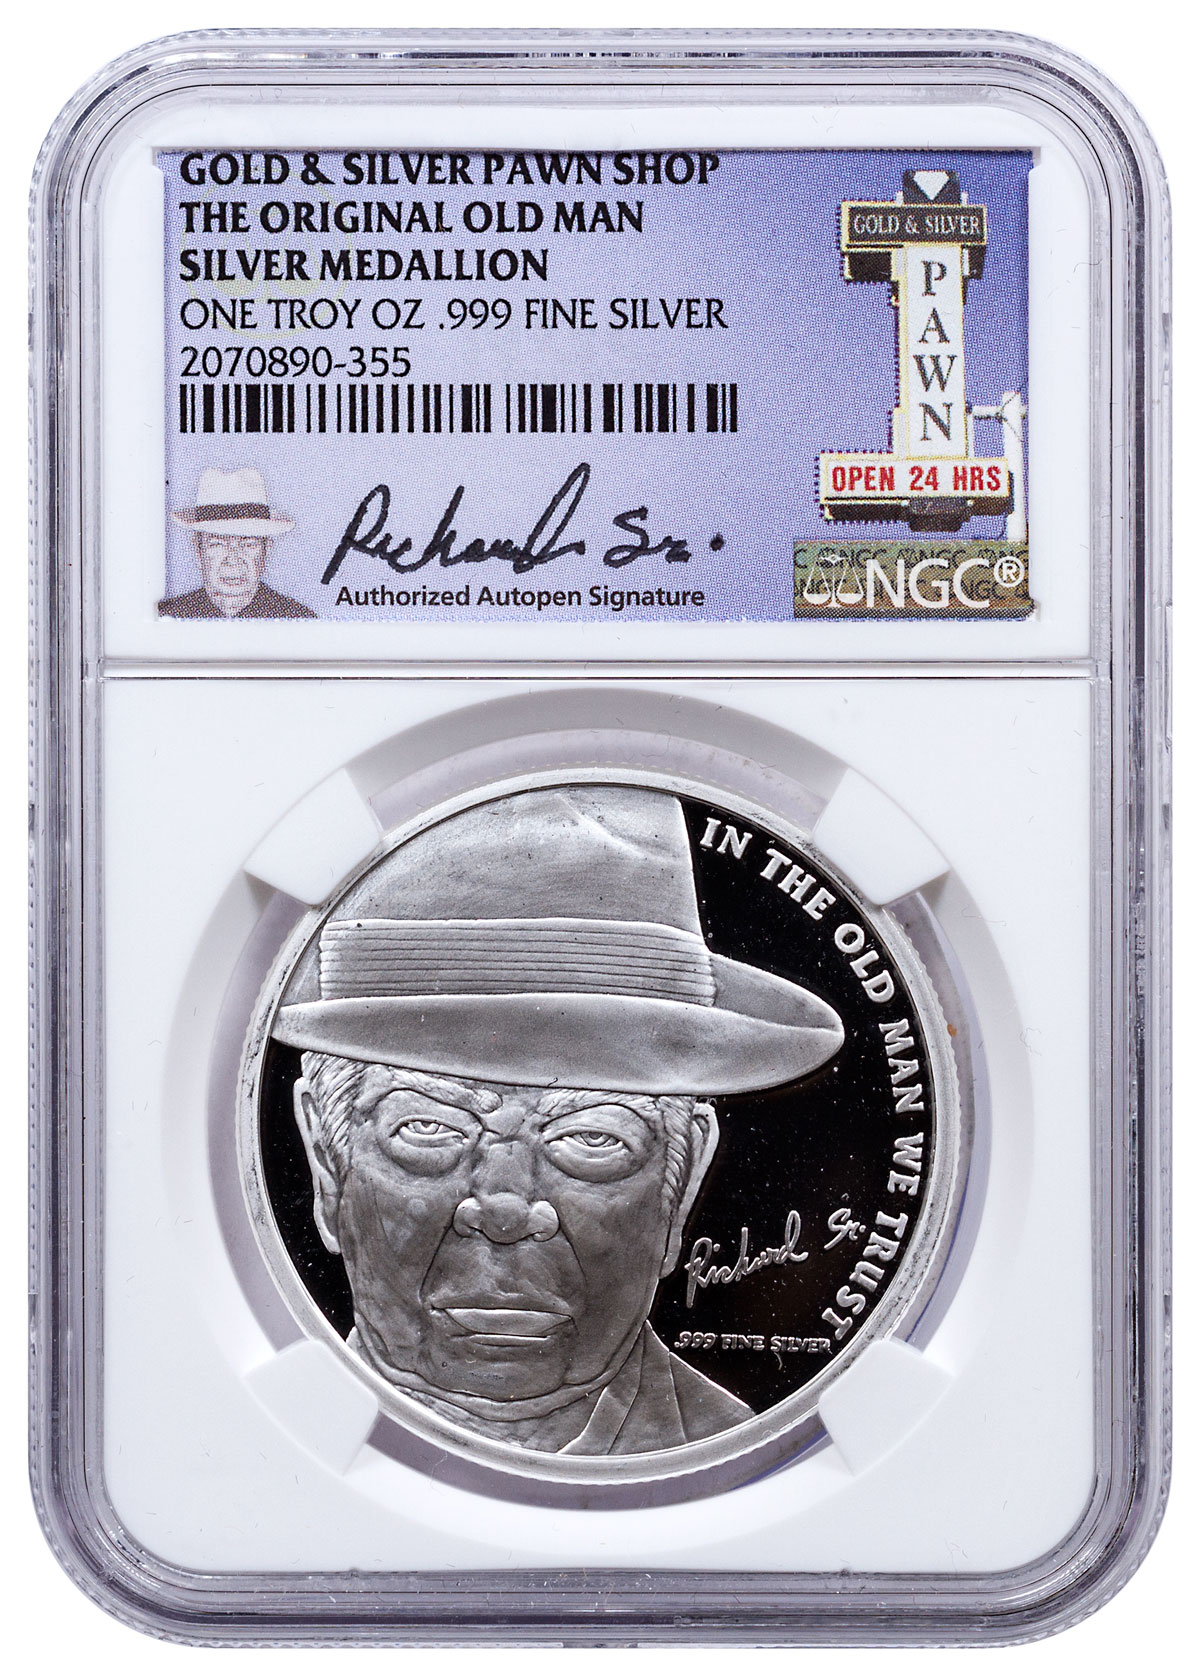 2016 Pawn Shop Old Man S 71st 1 Oz Silver Medal Ngc